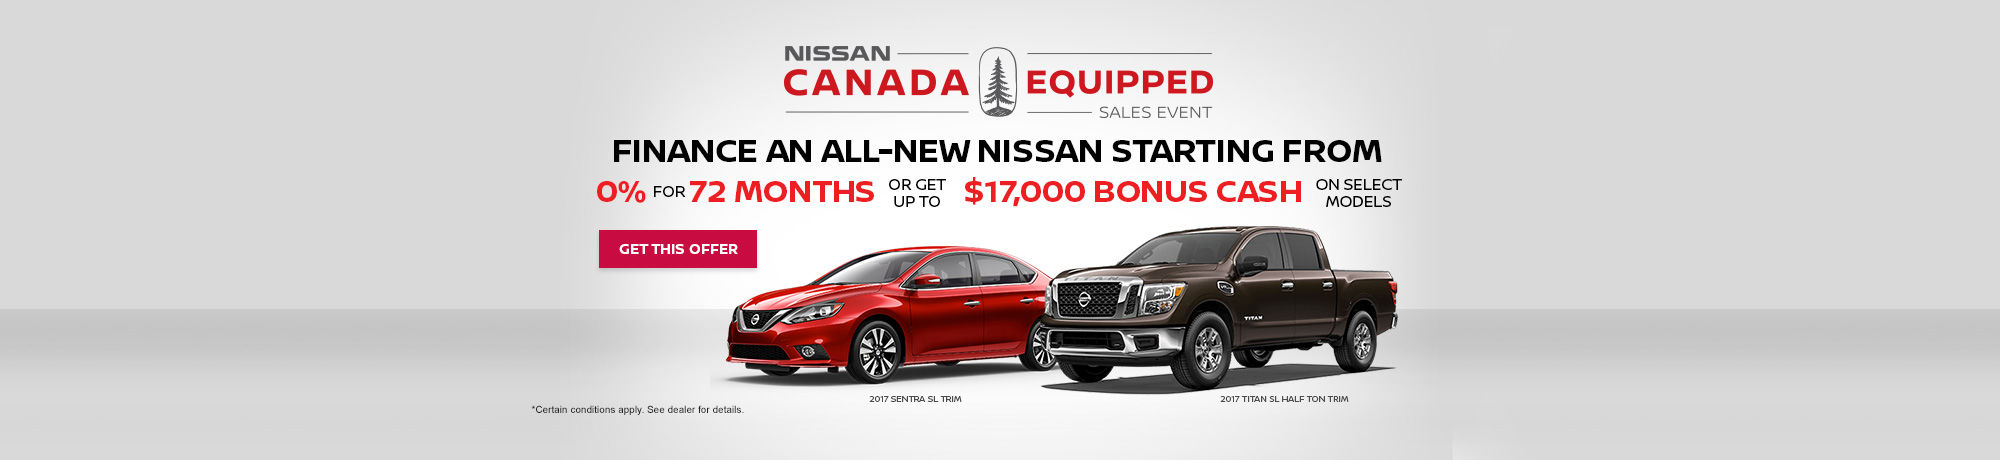 Nissan Canada Equipped